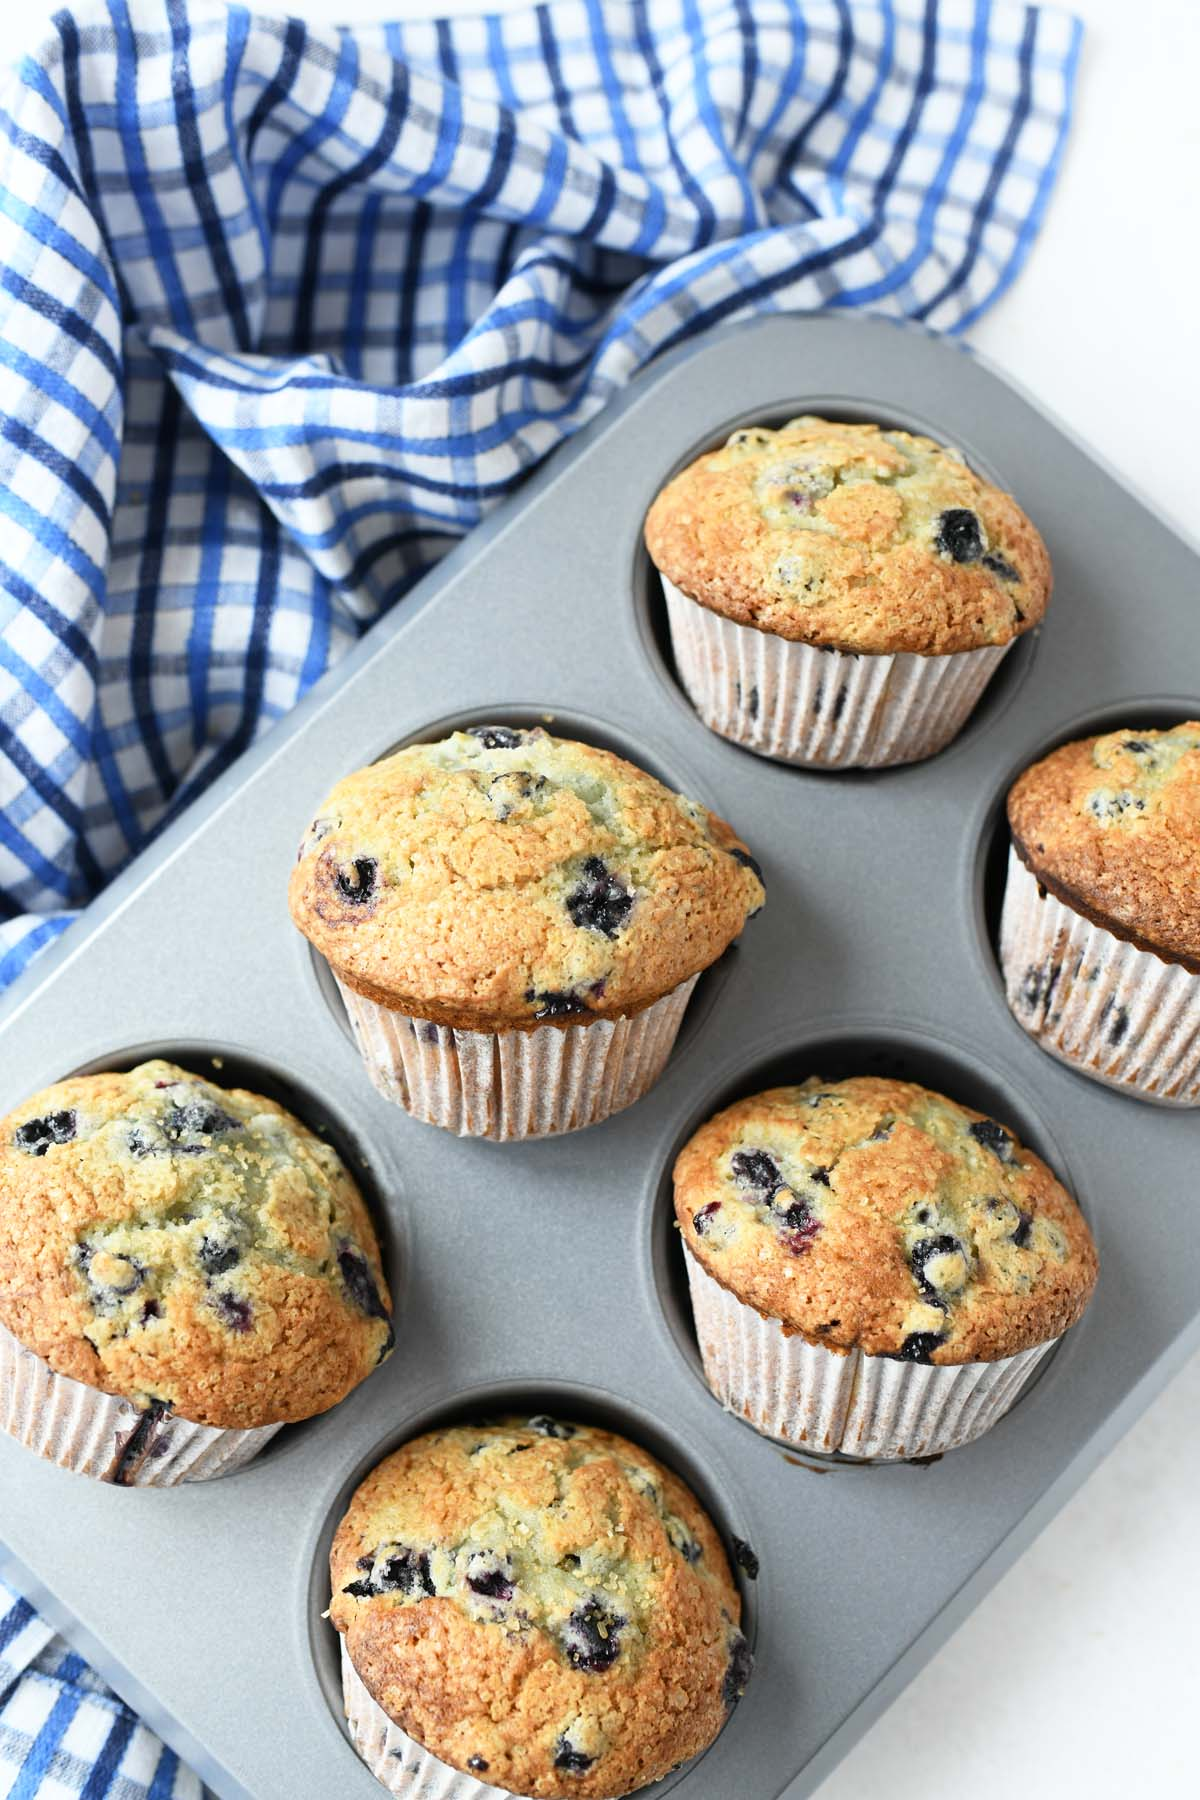 Jumbo Blueberry Muffins with frozen berries baked in a muffin tin.